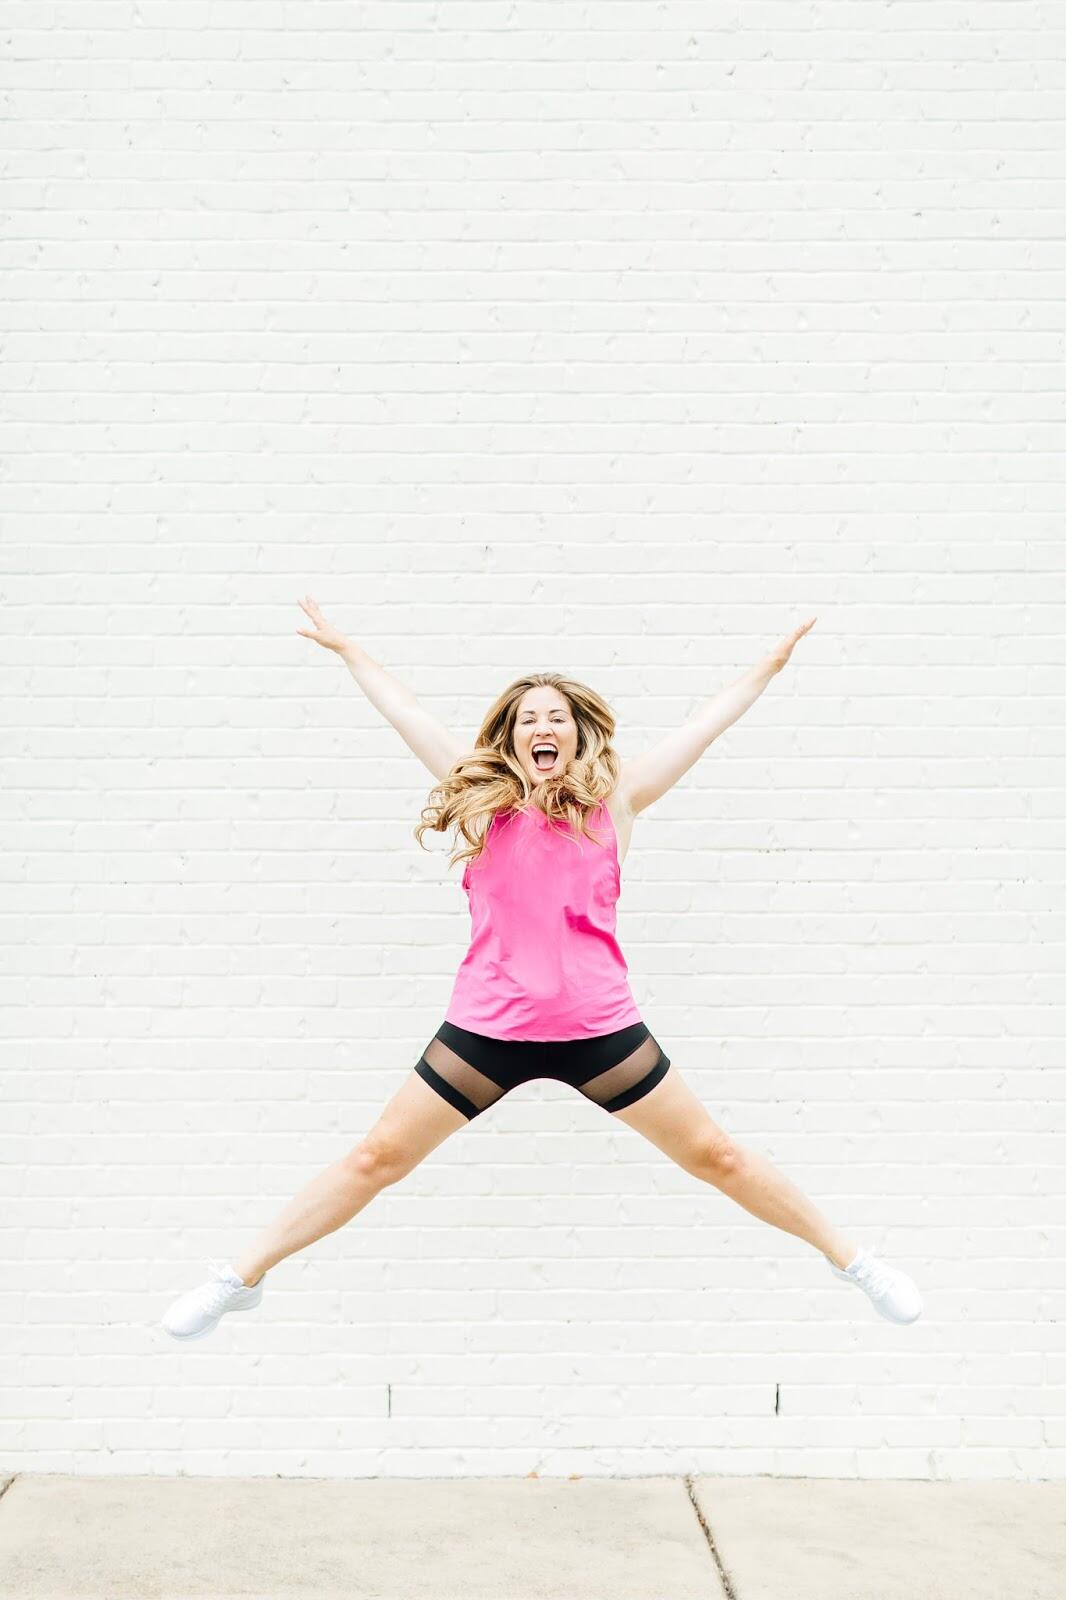 30 Day Workout Challenge - All about that Booty by popular blogger Walking in Memphis in High Heels